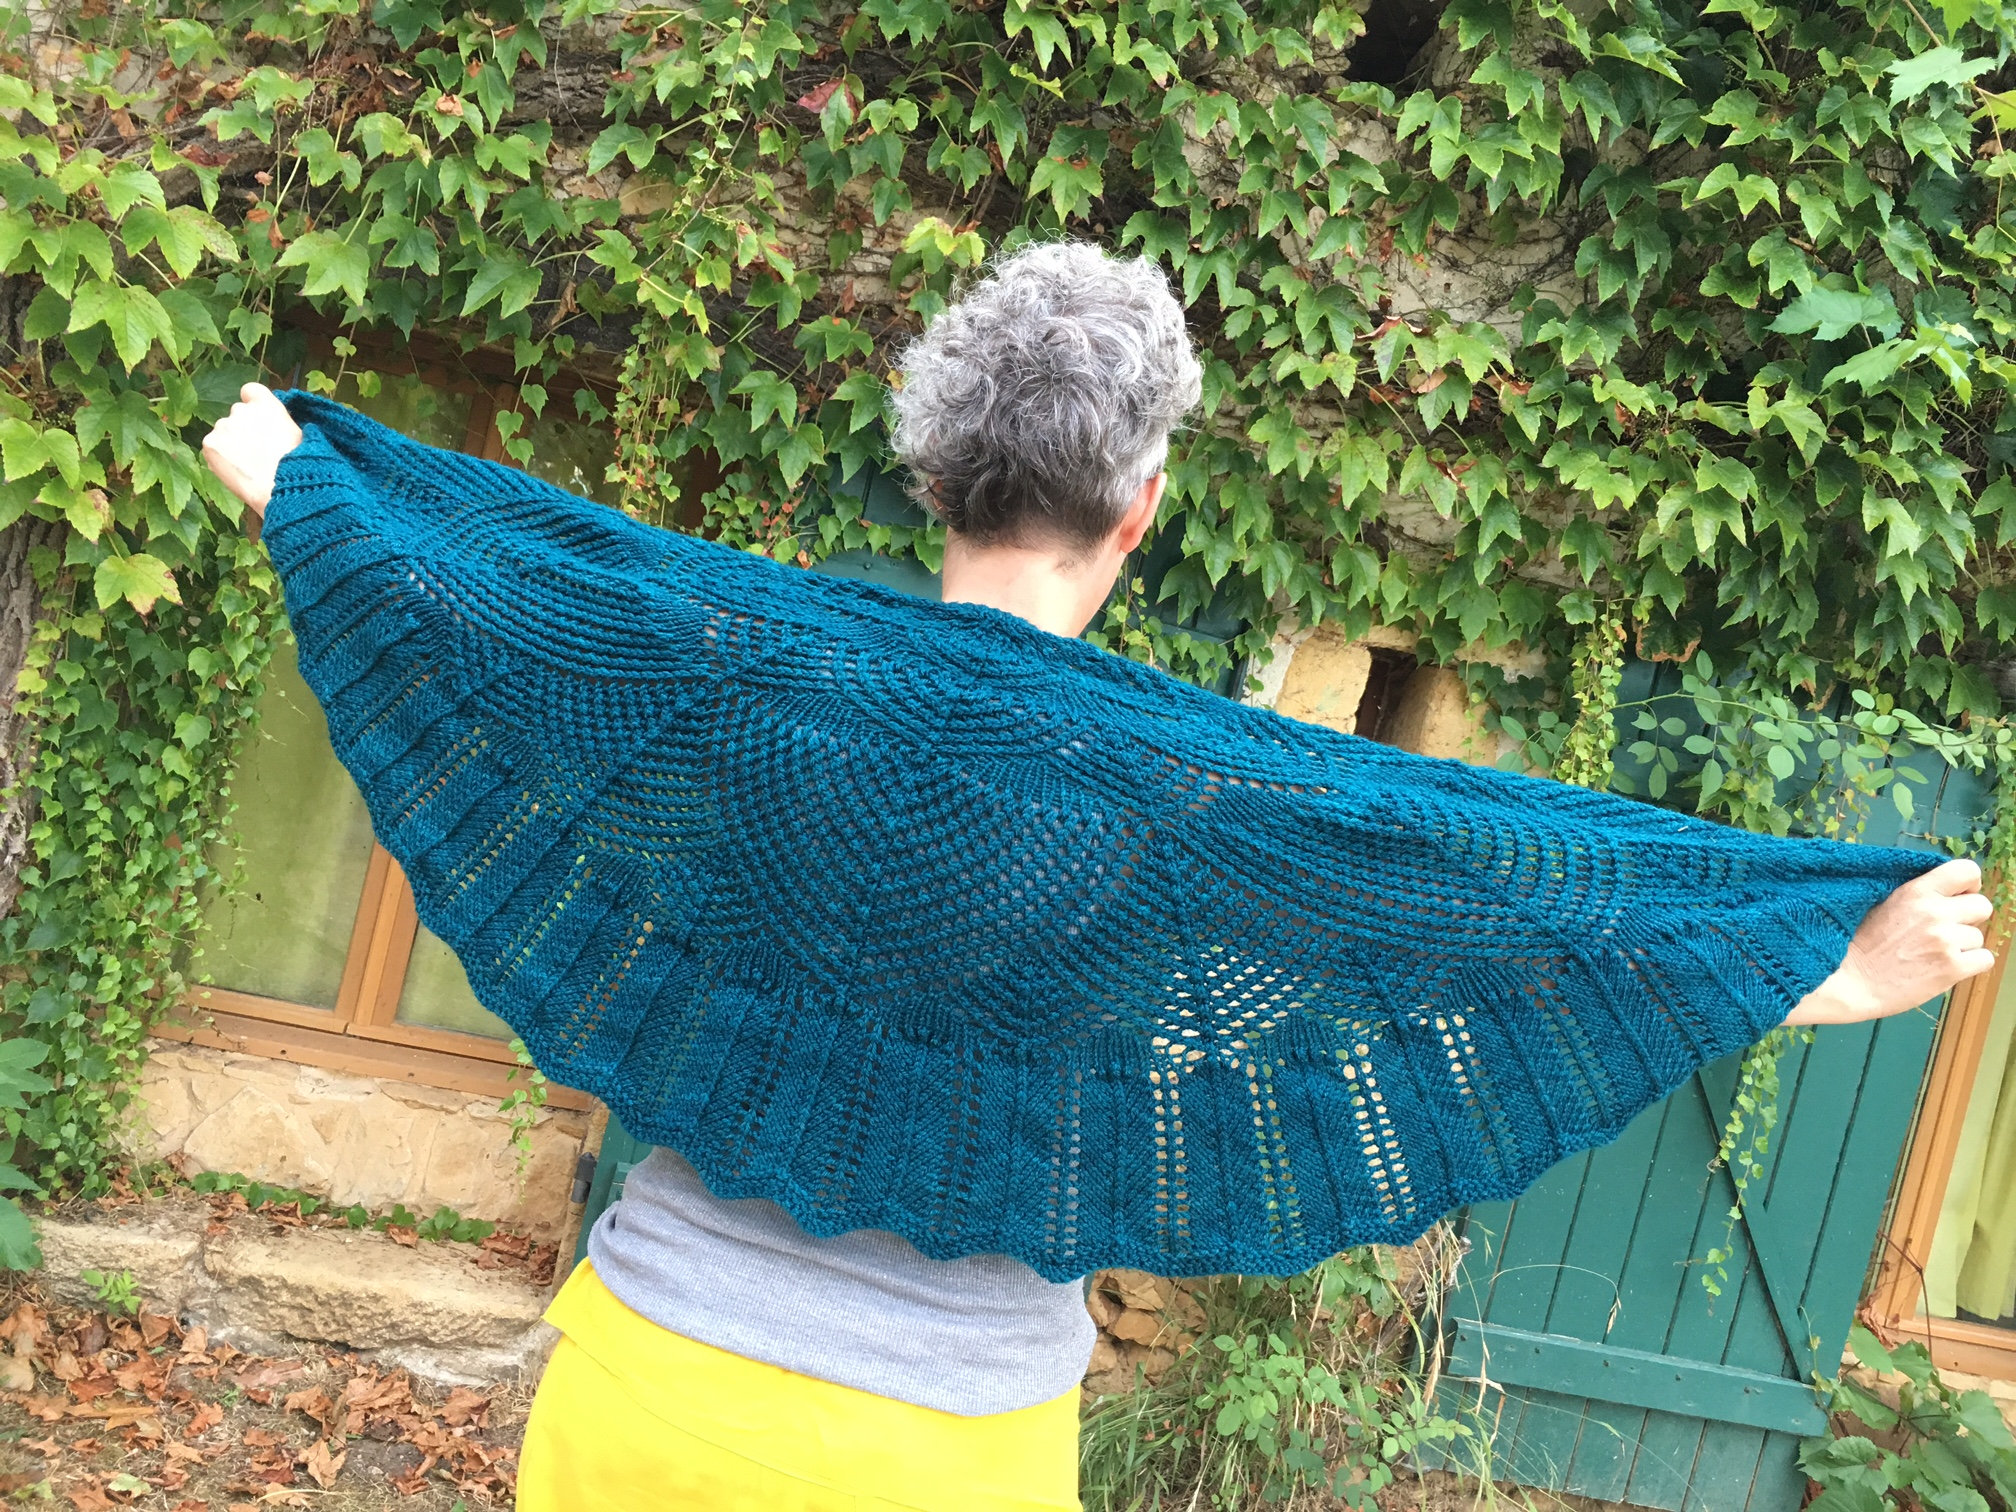 And in fact, Allison finished her Wavedeck Shawl not long after we recorded the episode - which may have partially contributed to the editing being slightly delayed... sorry!